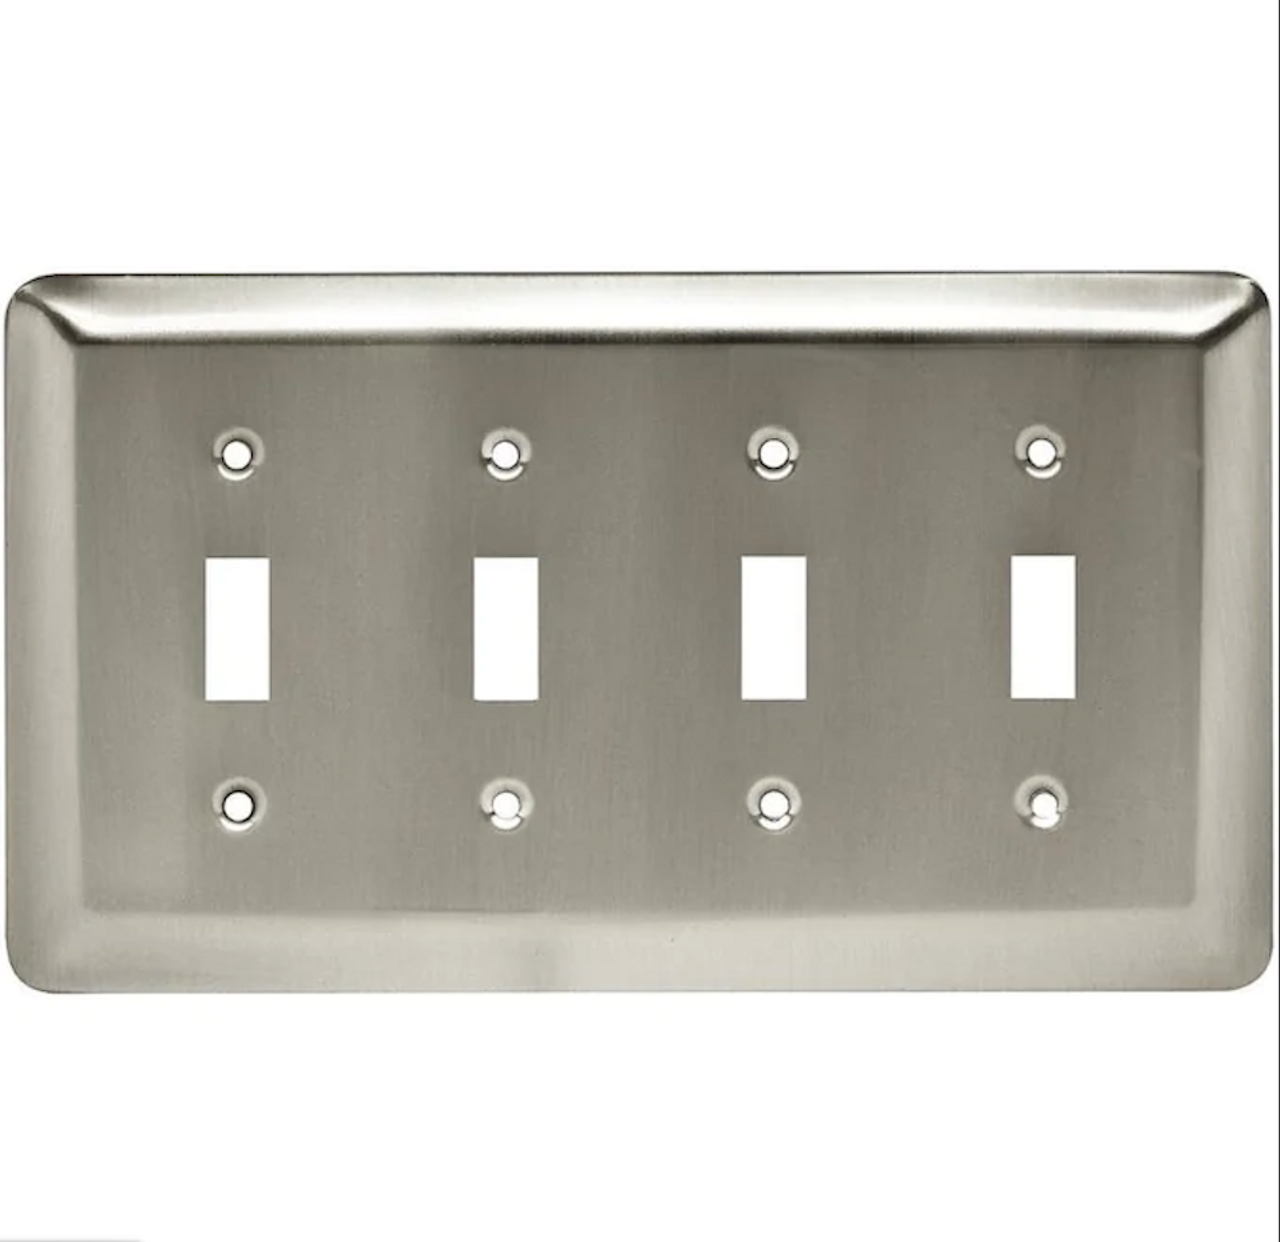 BRAINERD 64104 Stamped Satin Nickel Round Quad Toggle Switch Wall Plate Cover